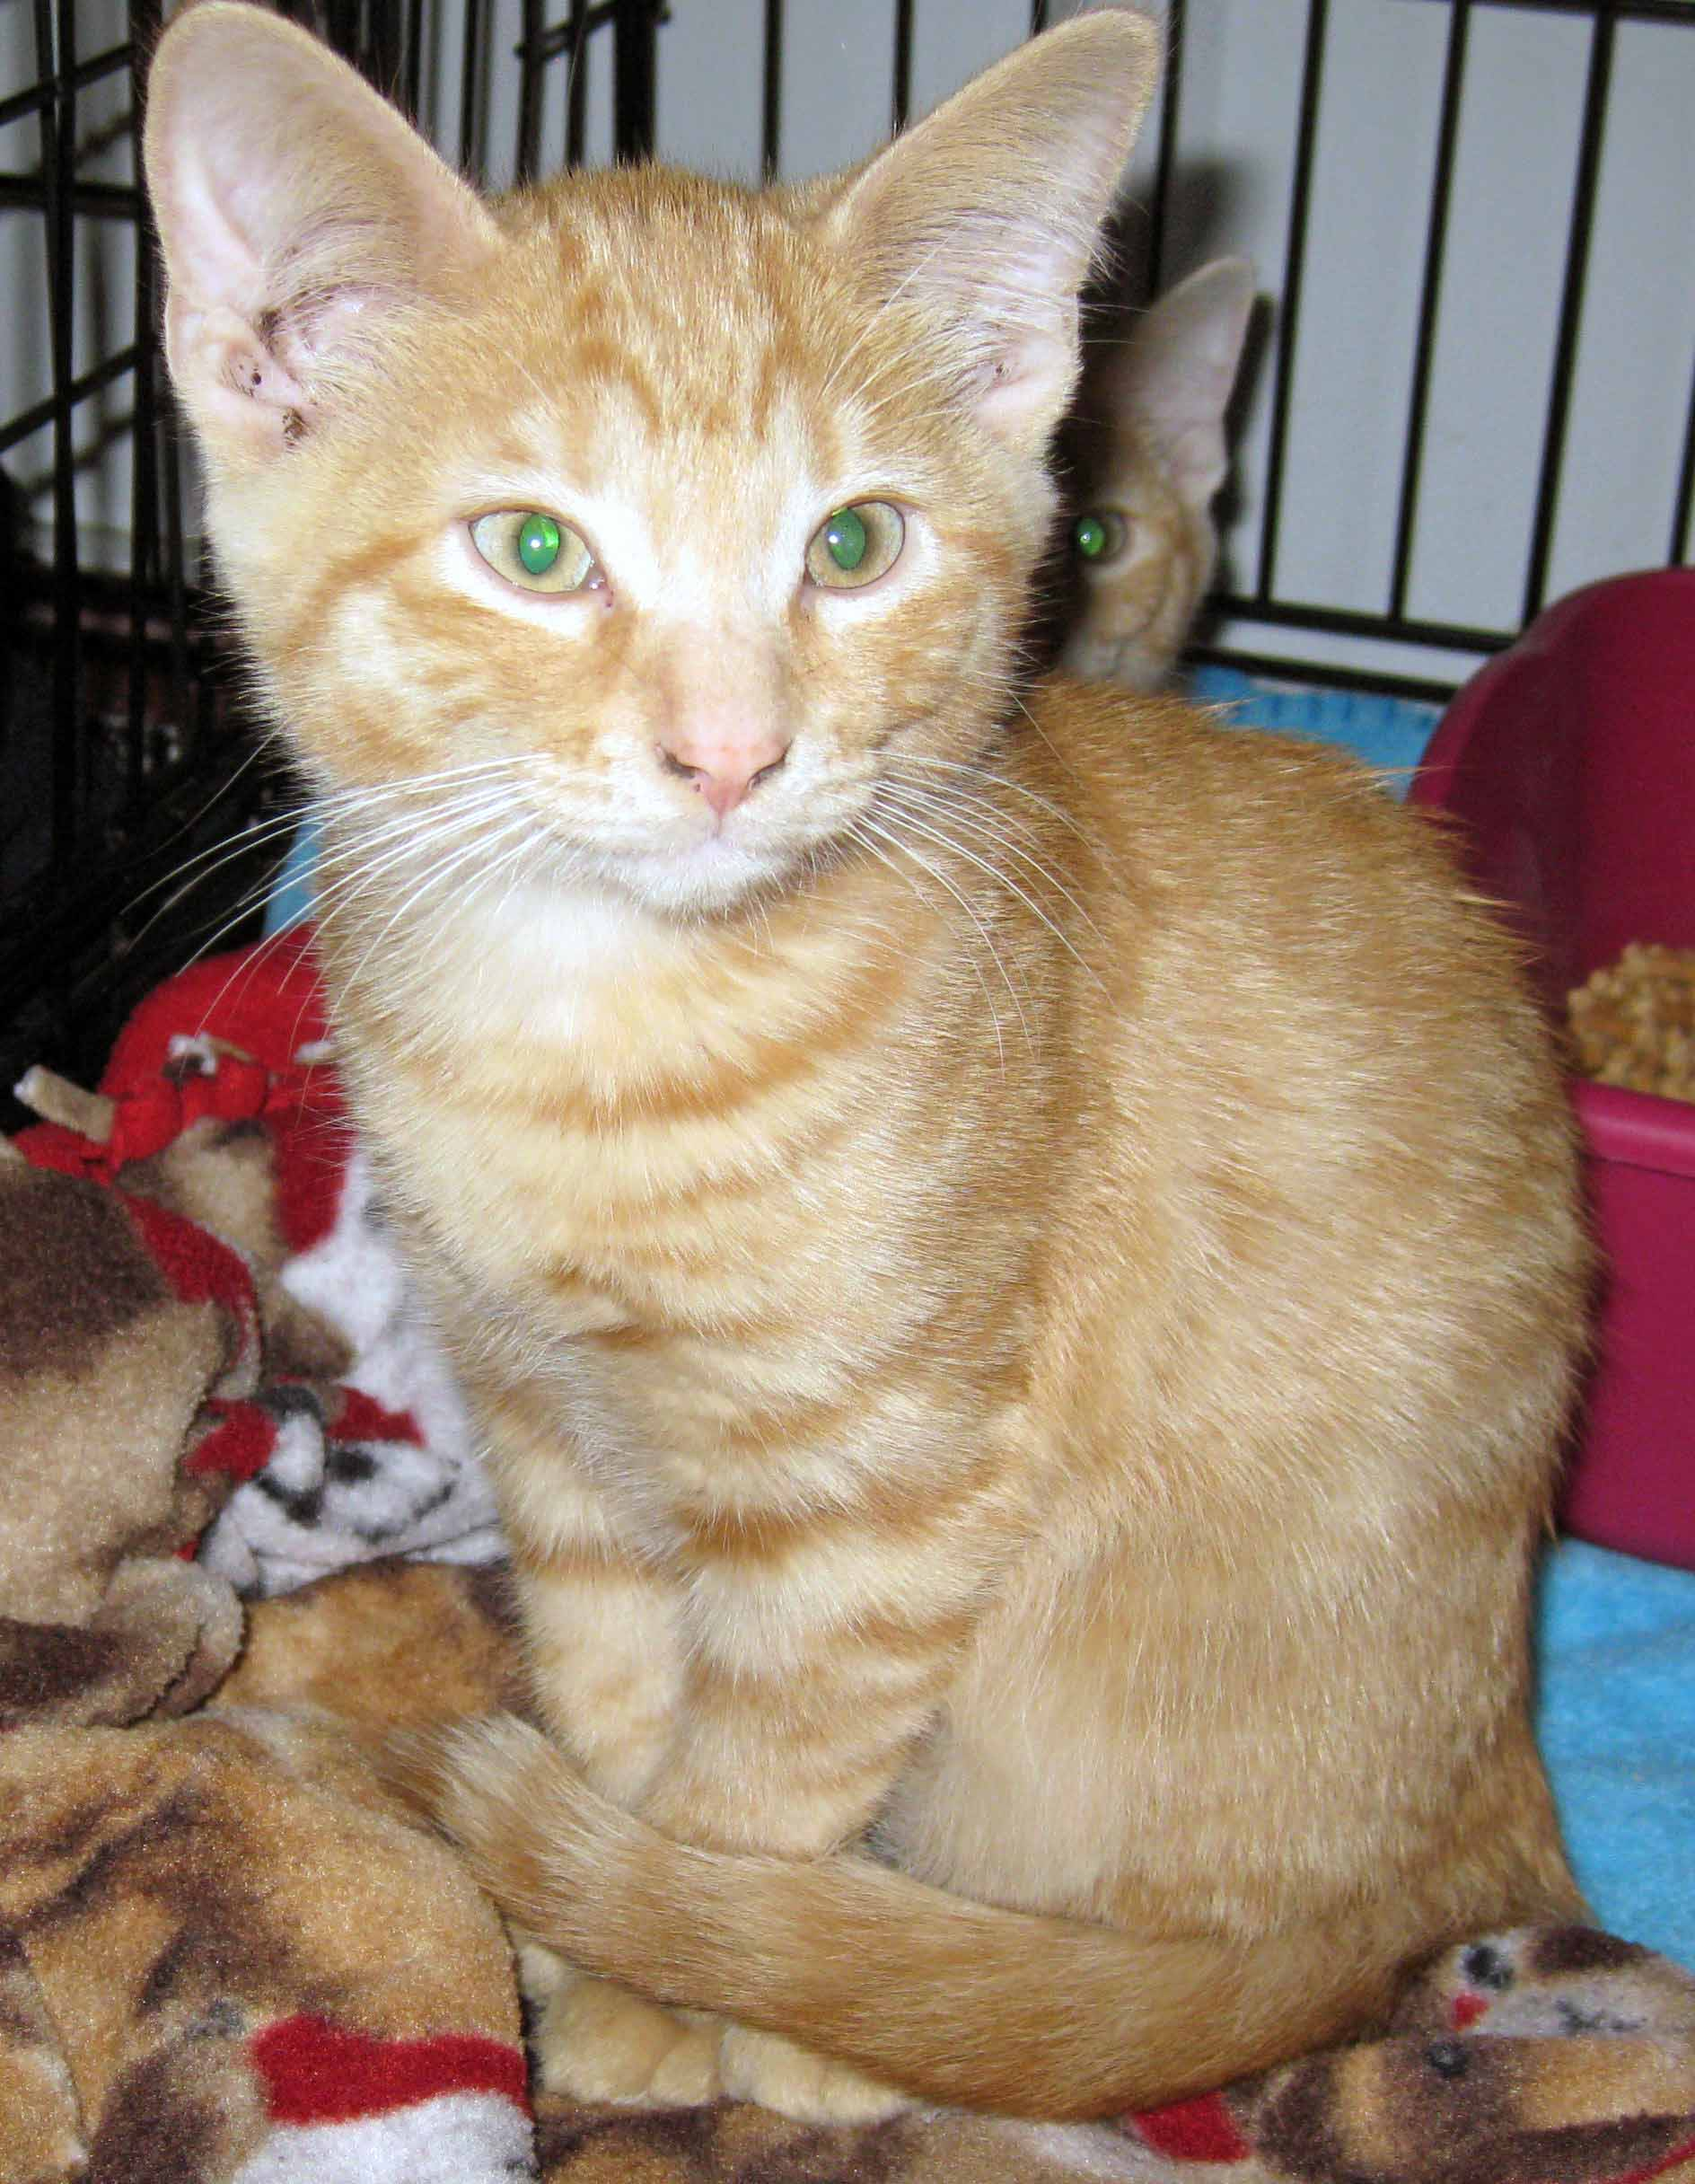 Manny - Adopted September 2012